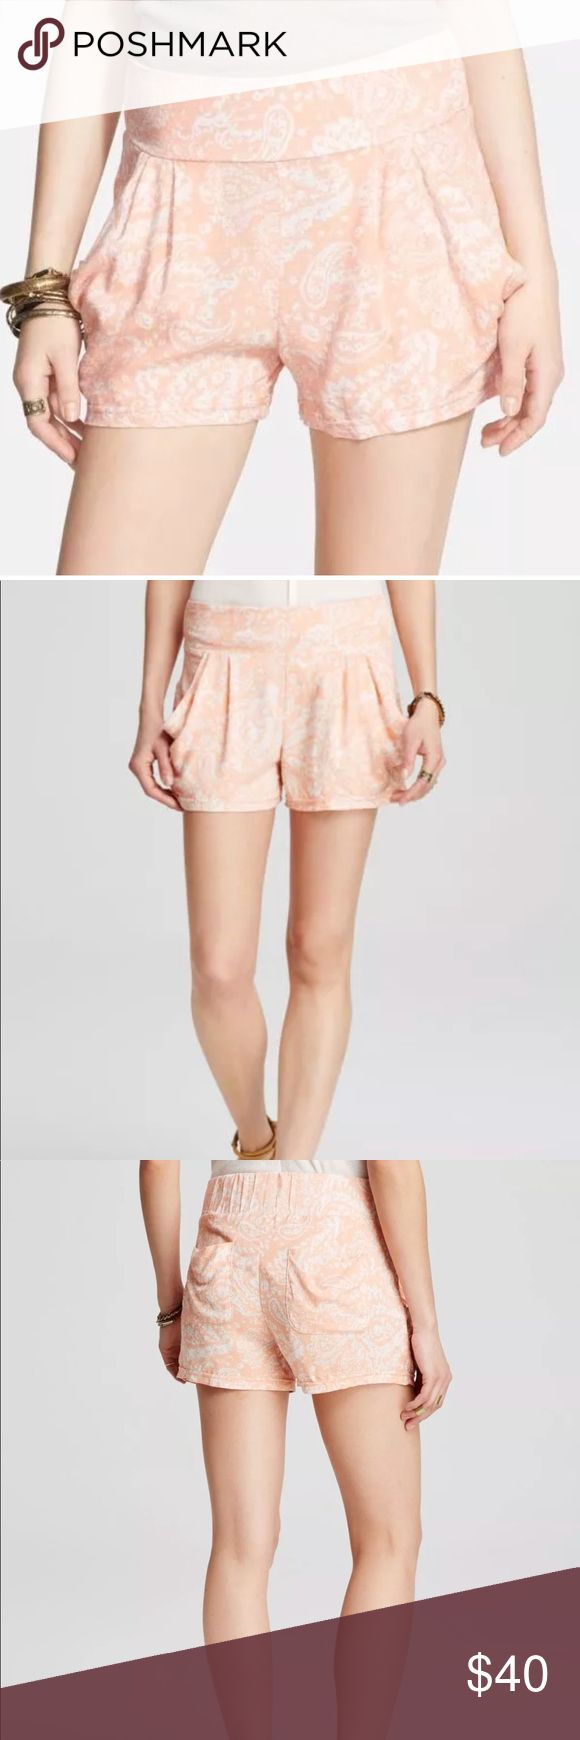 """NEW Free People Drapey Pocket Paisley Shorts Free People Paisley Print Drapey Pocket Shorts  Size: Small (4-6)  Waist - 15""""  Rise - 12"""" Inseam - 2.5"""" Length - 12.5""""  Condition: NEW without tags. Retail $78   Description:   Gentle pleats define leggy cotton shorts decked in a fetching paisley print. The design is outfitted with an elasticized waistband for easy pull-on styling. - 2.5"""" inseam; 26"""" leg opening; 12"""" front rise; 16"""" back rise  - Pull-on style - Front slant pockets; back patch…"""